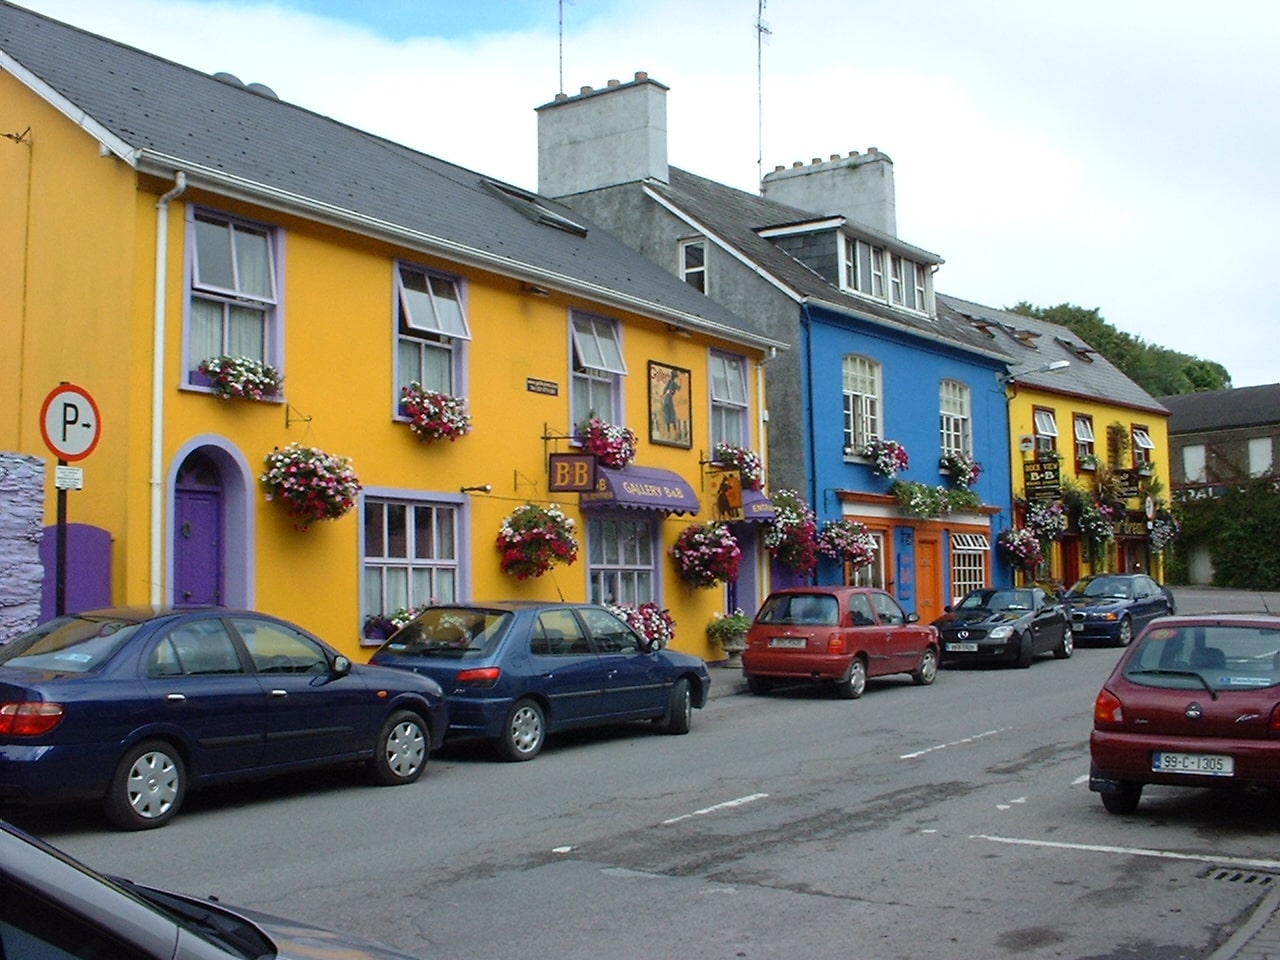 Quaint Kinsale is one of the best places to stay in Ireland